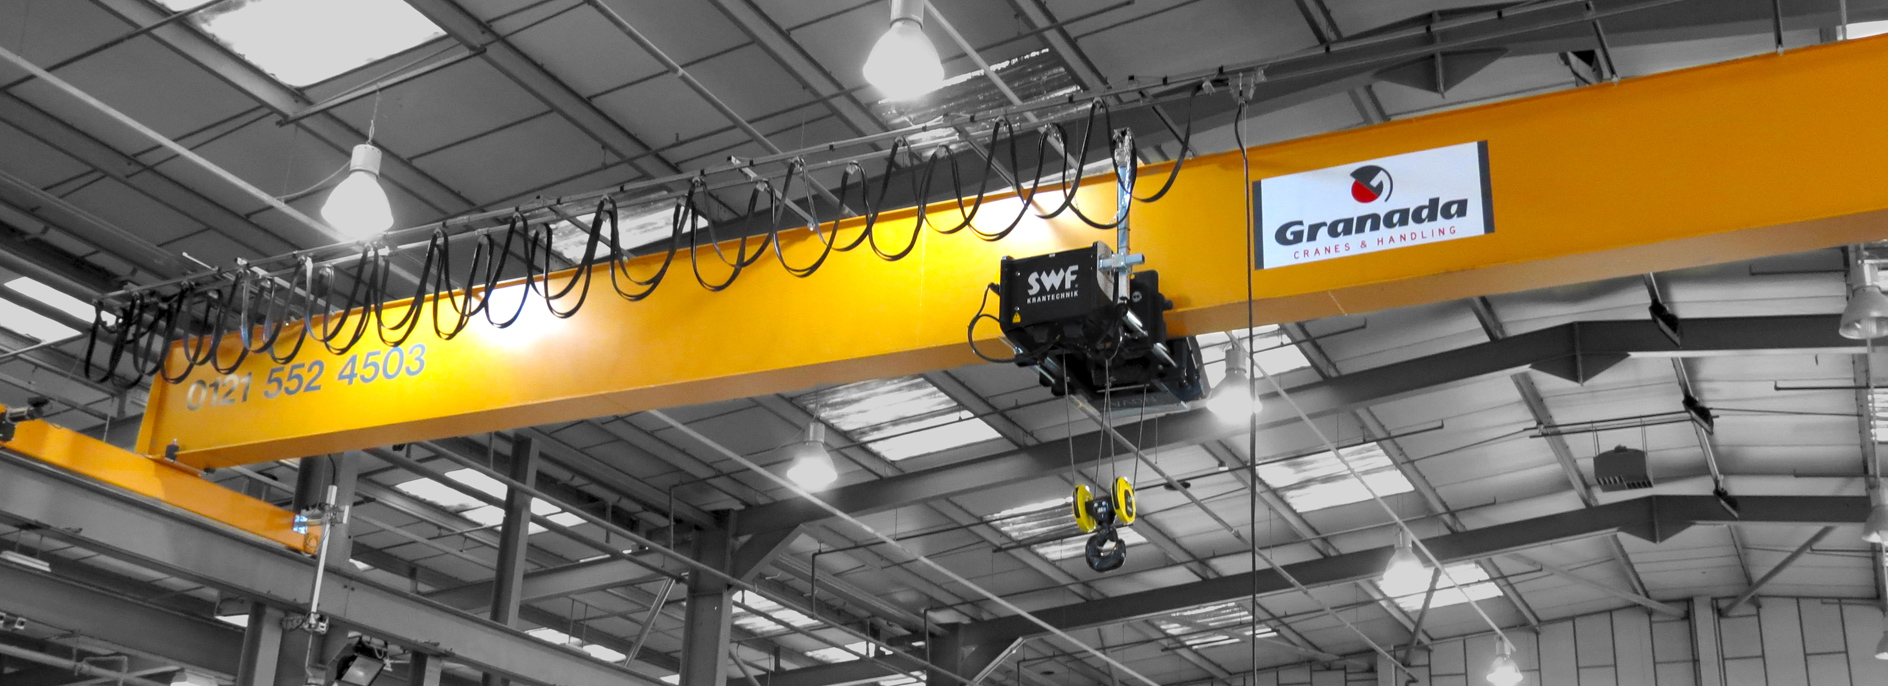 SWF Hoists used on Overhead Cranes supplied by Granada Cranes and handling